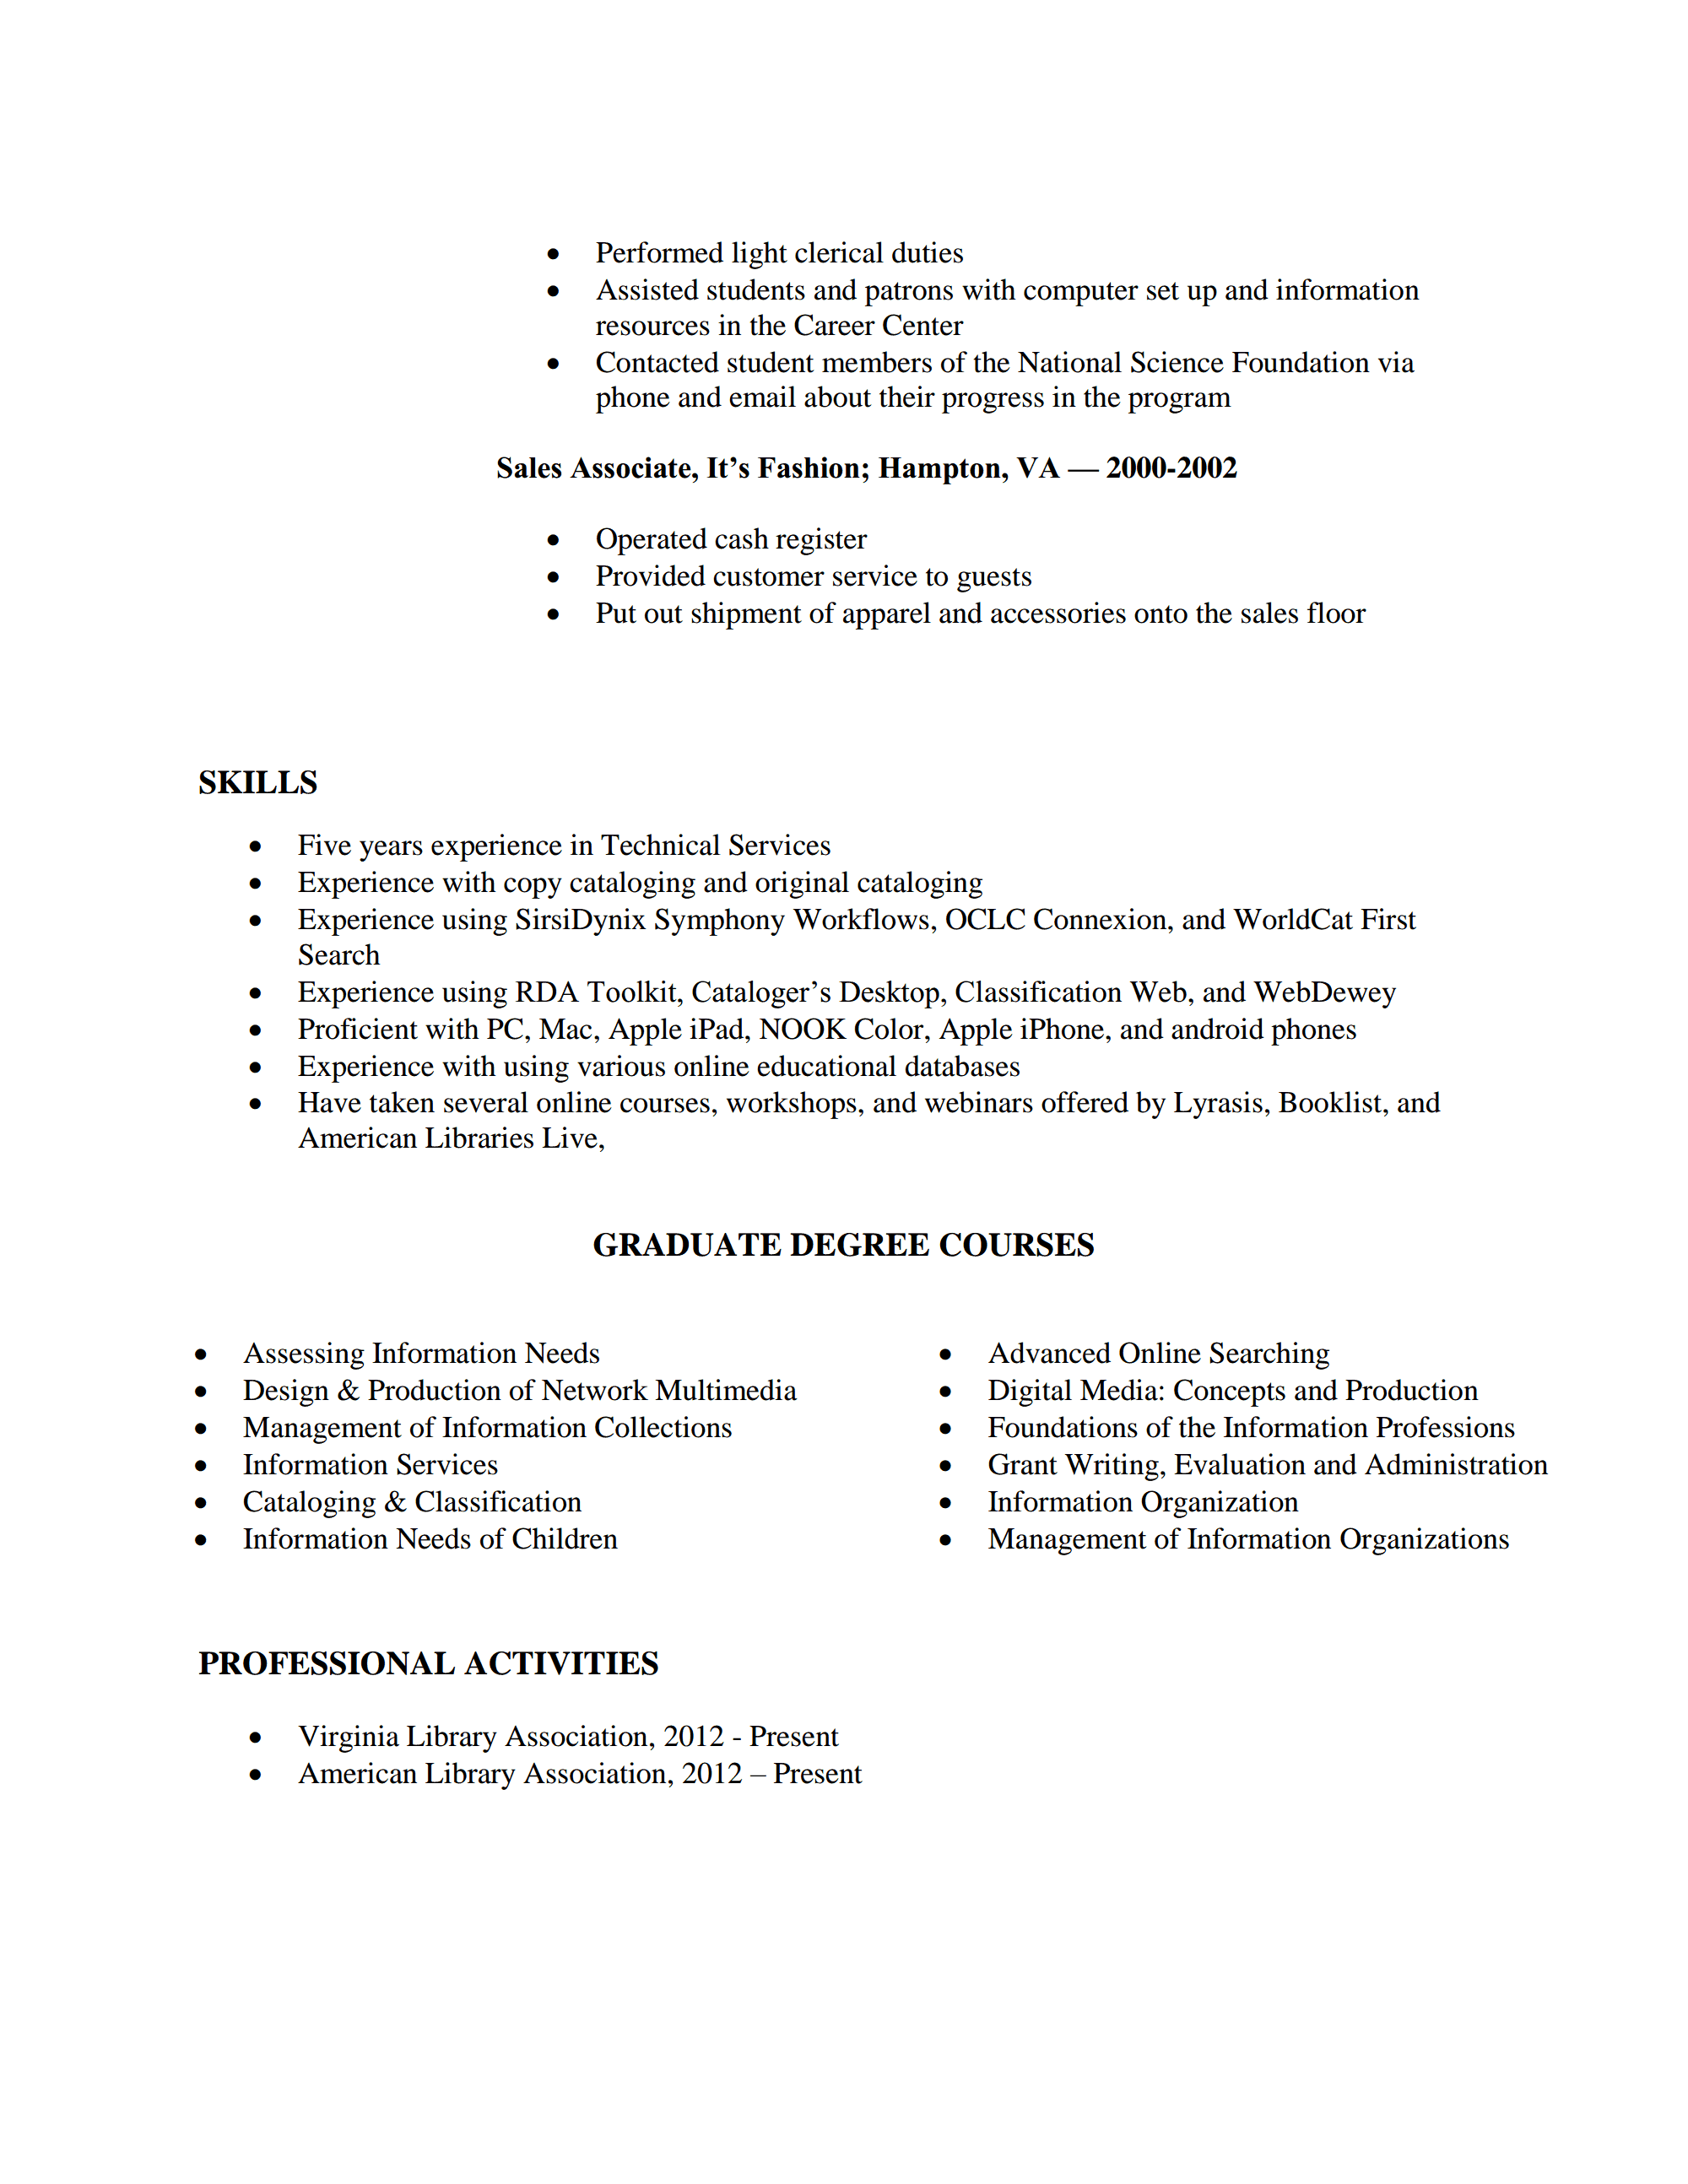 freelance writer description for resume 171 foures